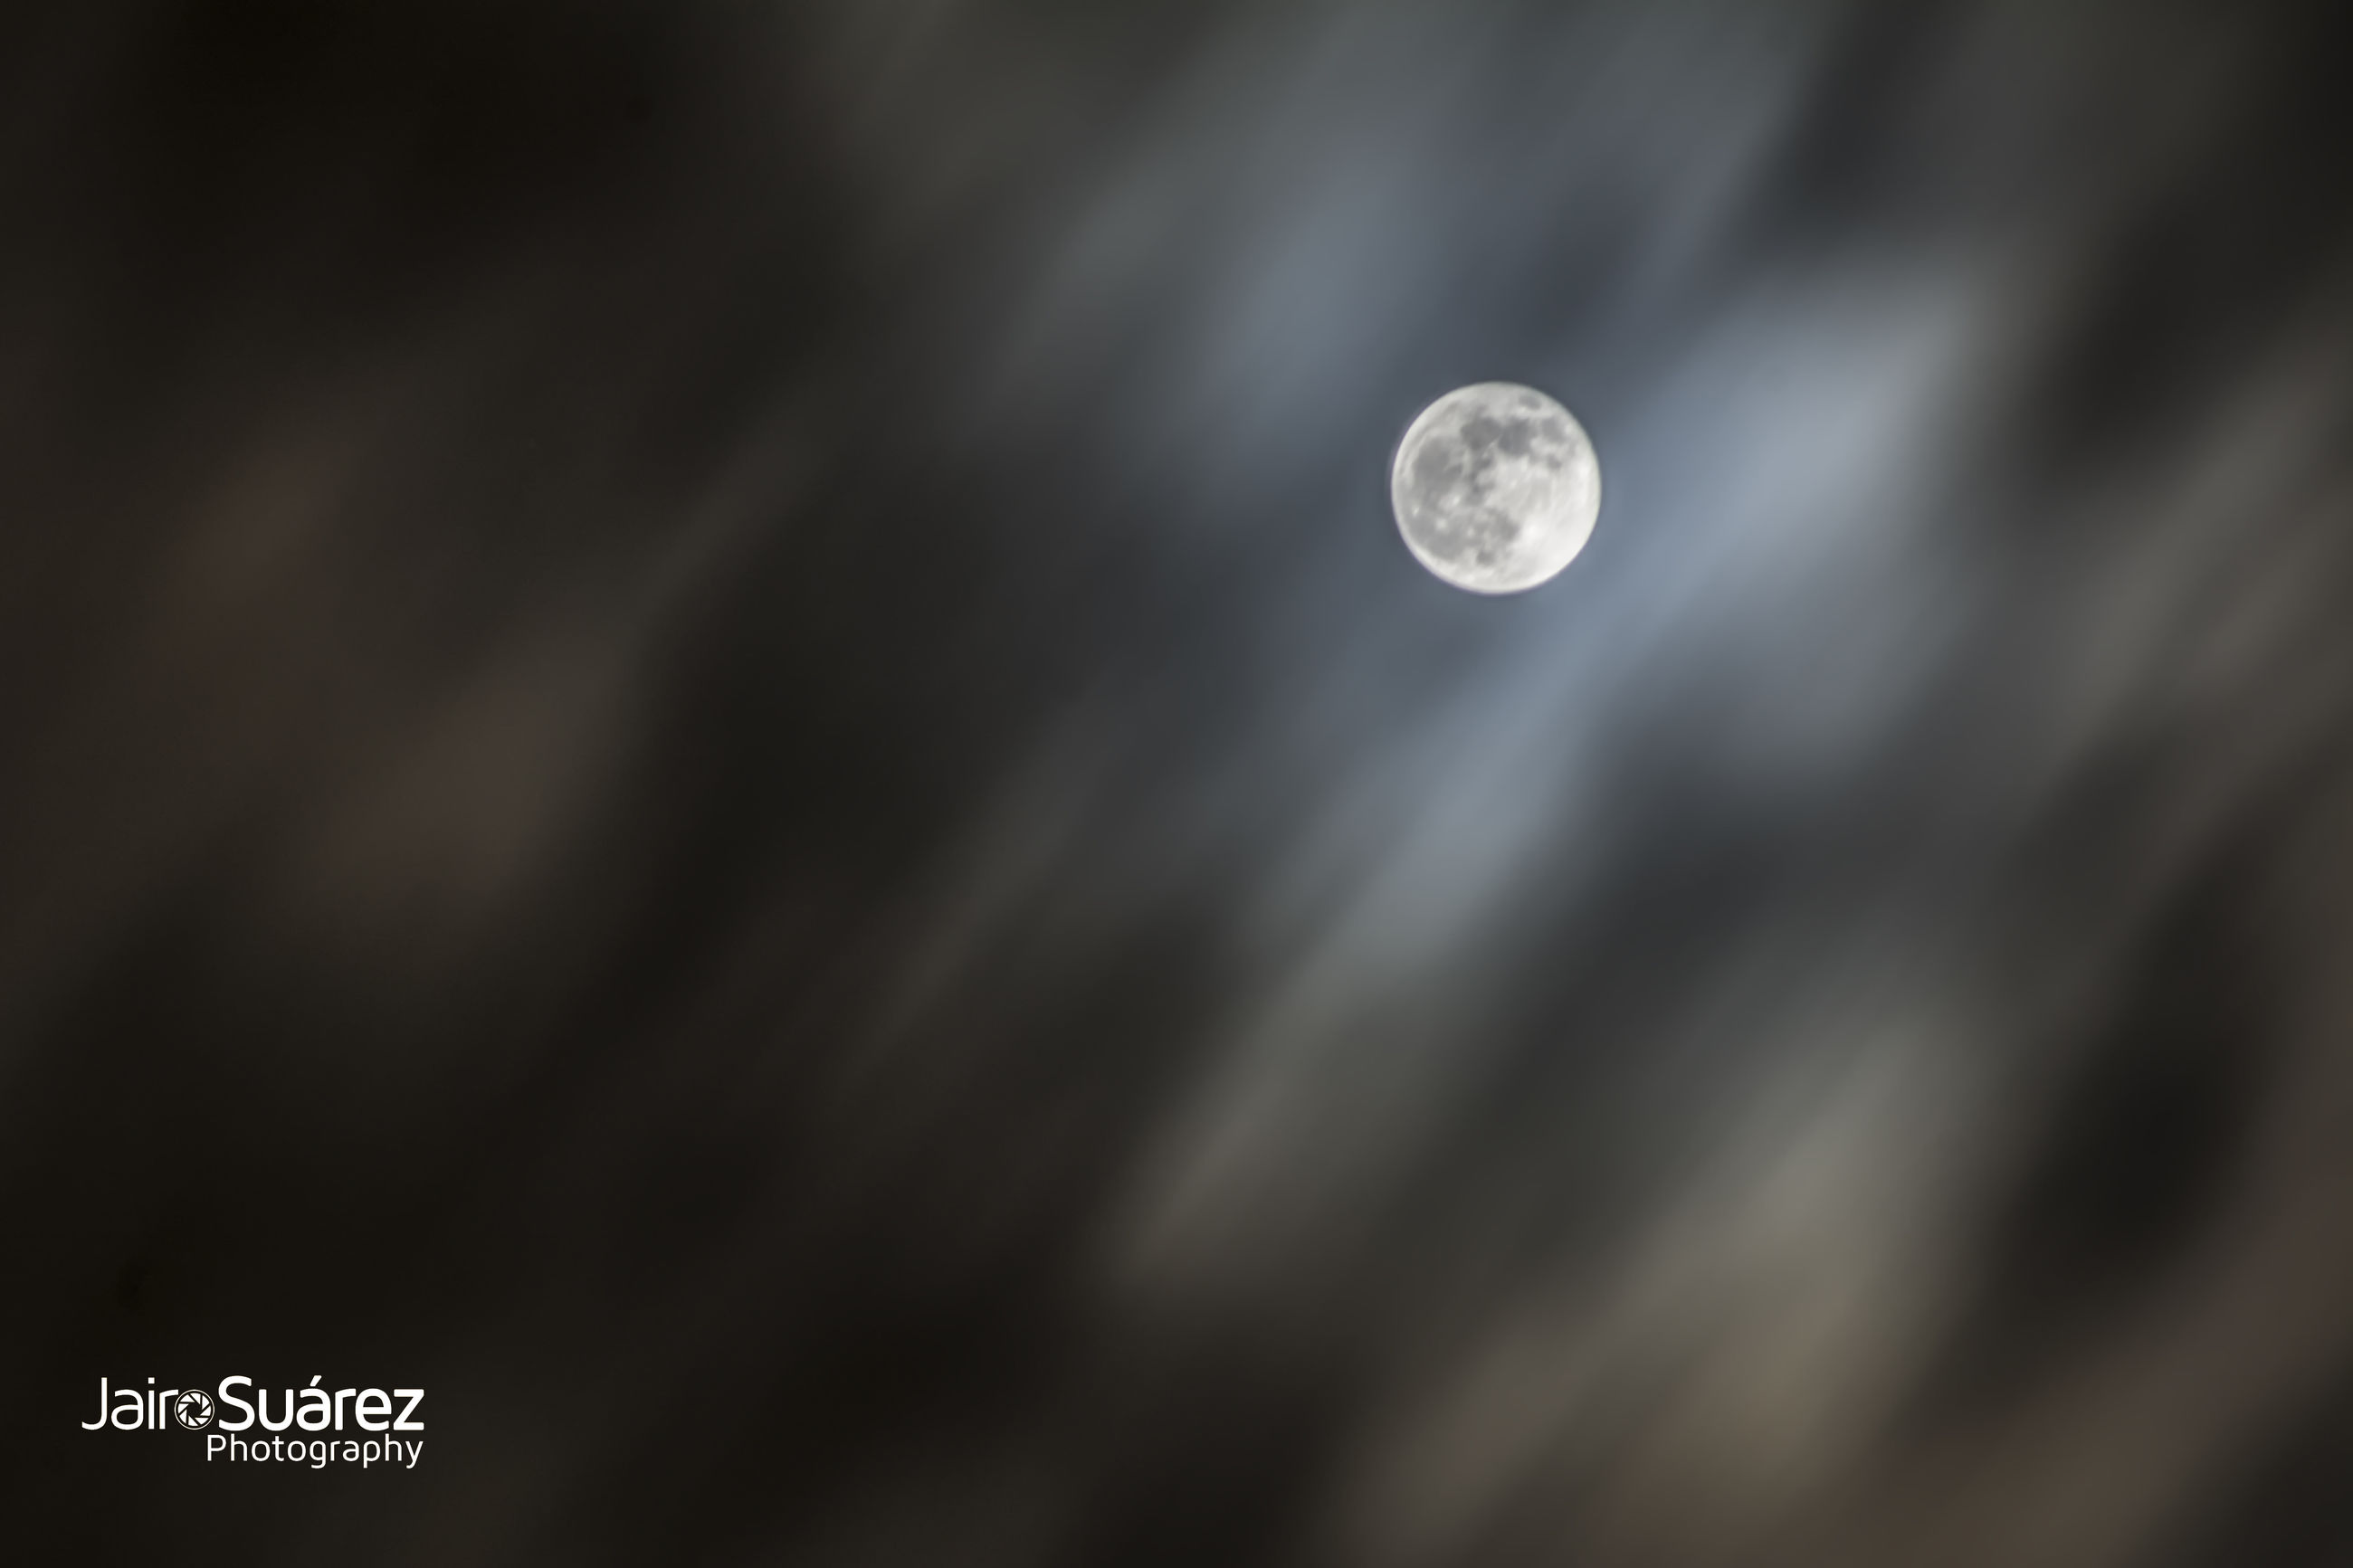 space, moon, astronomy, sky, night, planetary moon, low angle view, no people, full moon, beauty in nature, nature, geometric shape, focus on background, circle, scenics - nature, shape, outdoors, science, cloud - sky, space exploration, eclipse, moonlight, space and astronomy